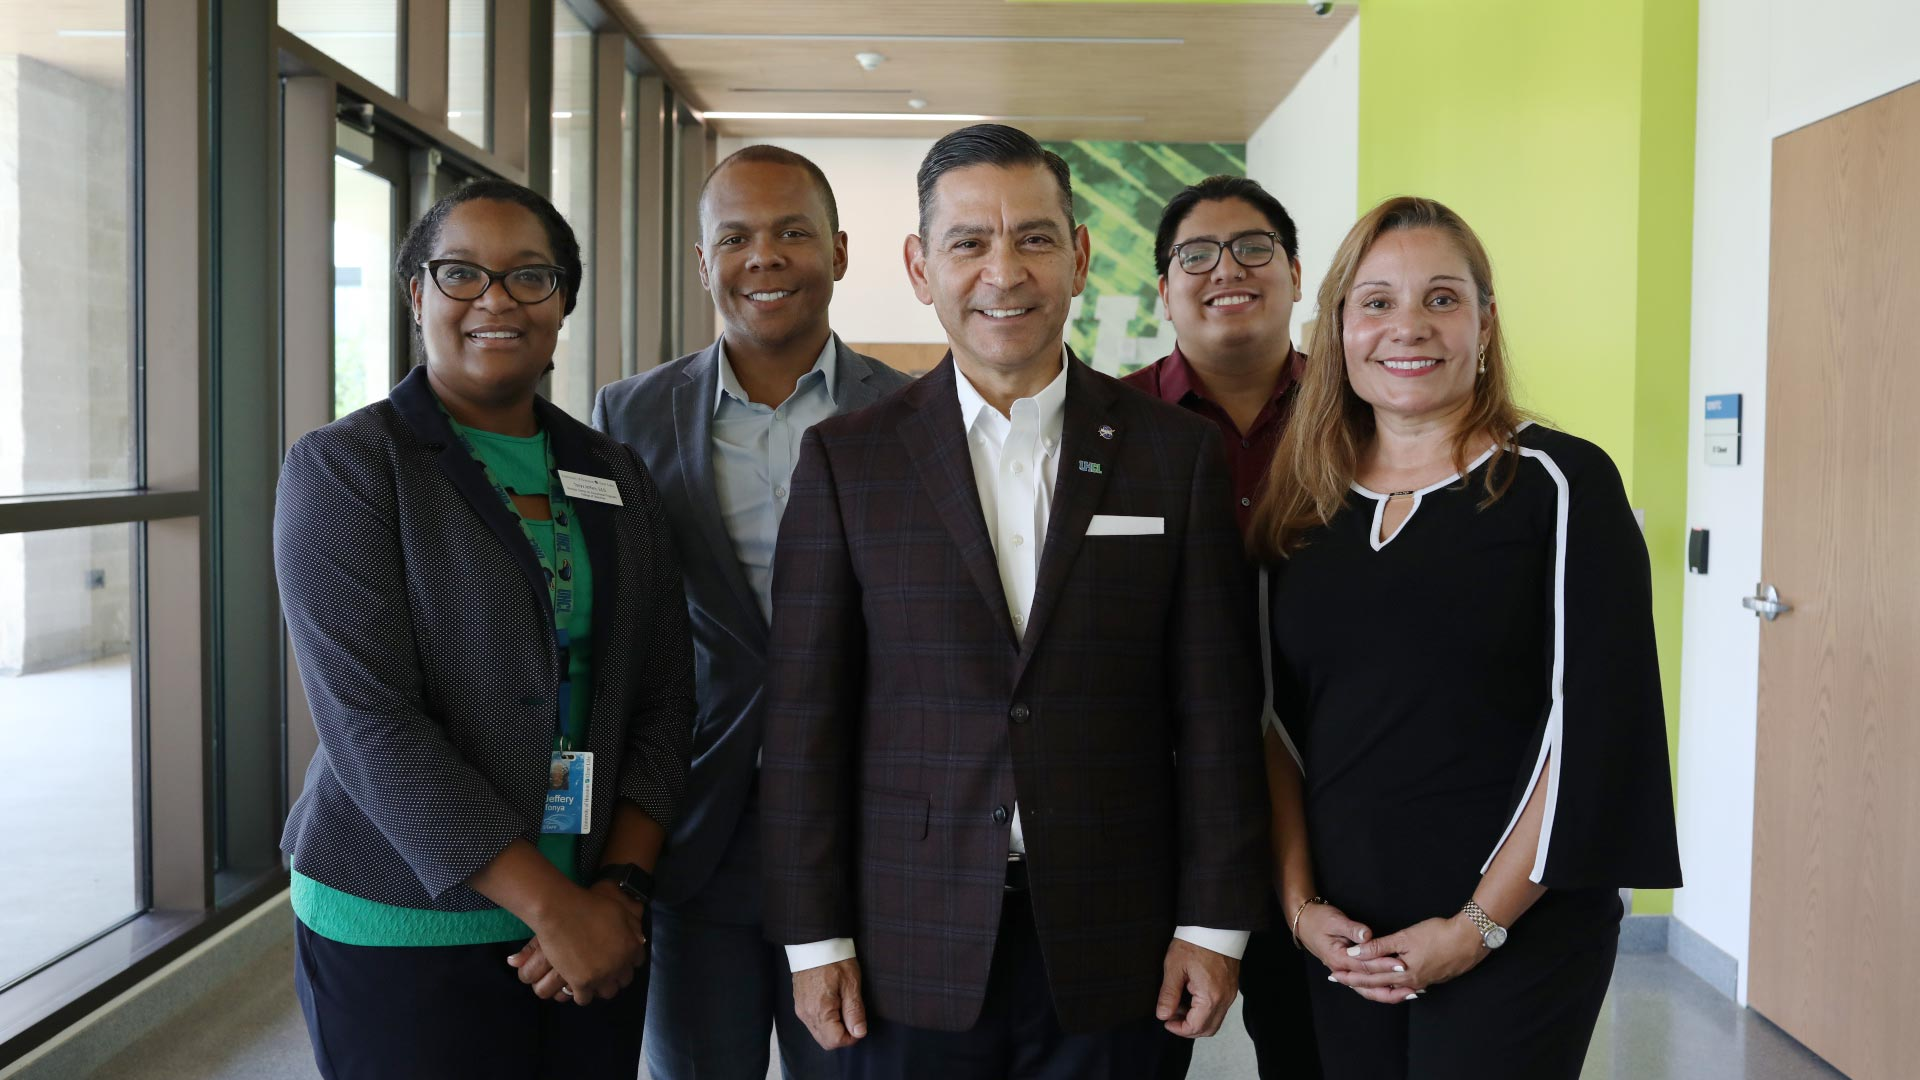 UHCL coding academy empowers girls in STEM, fulfills Texas workforce goal